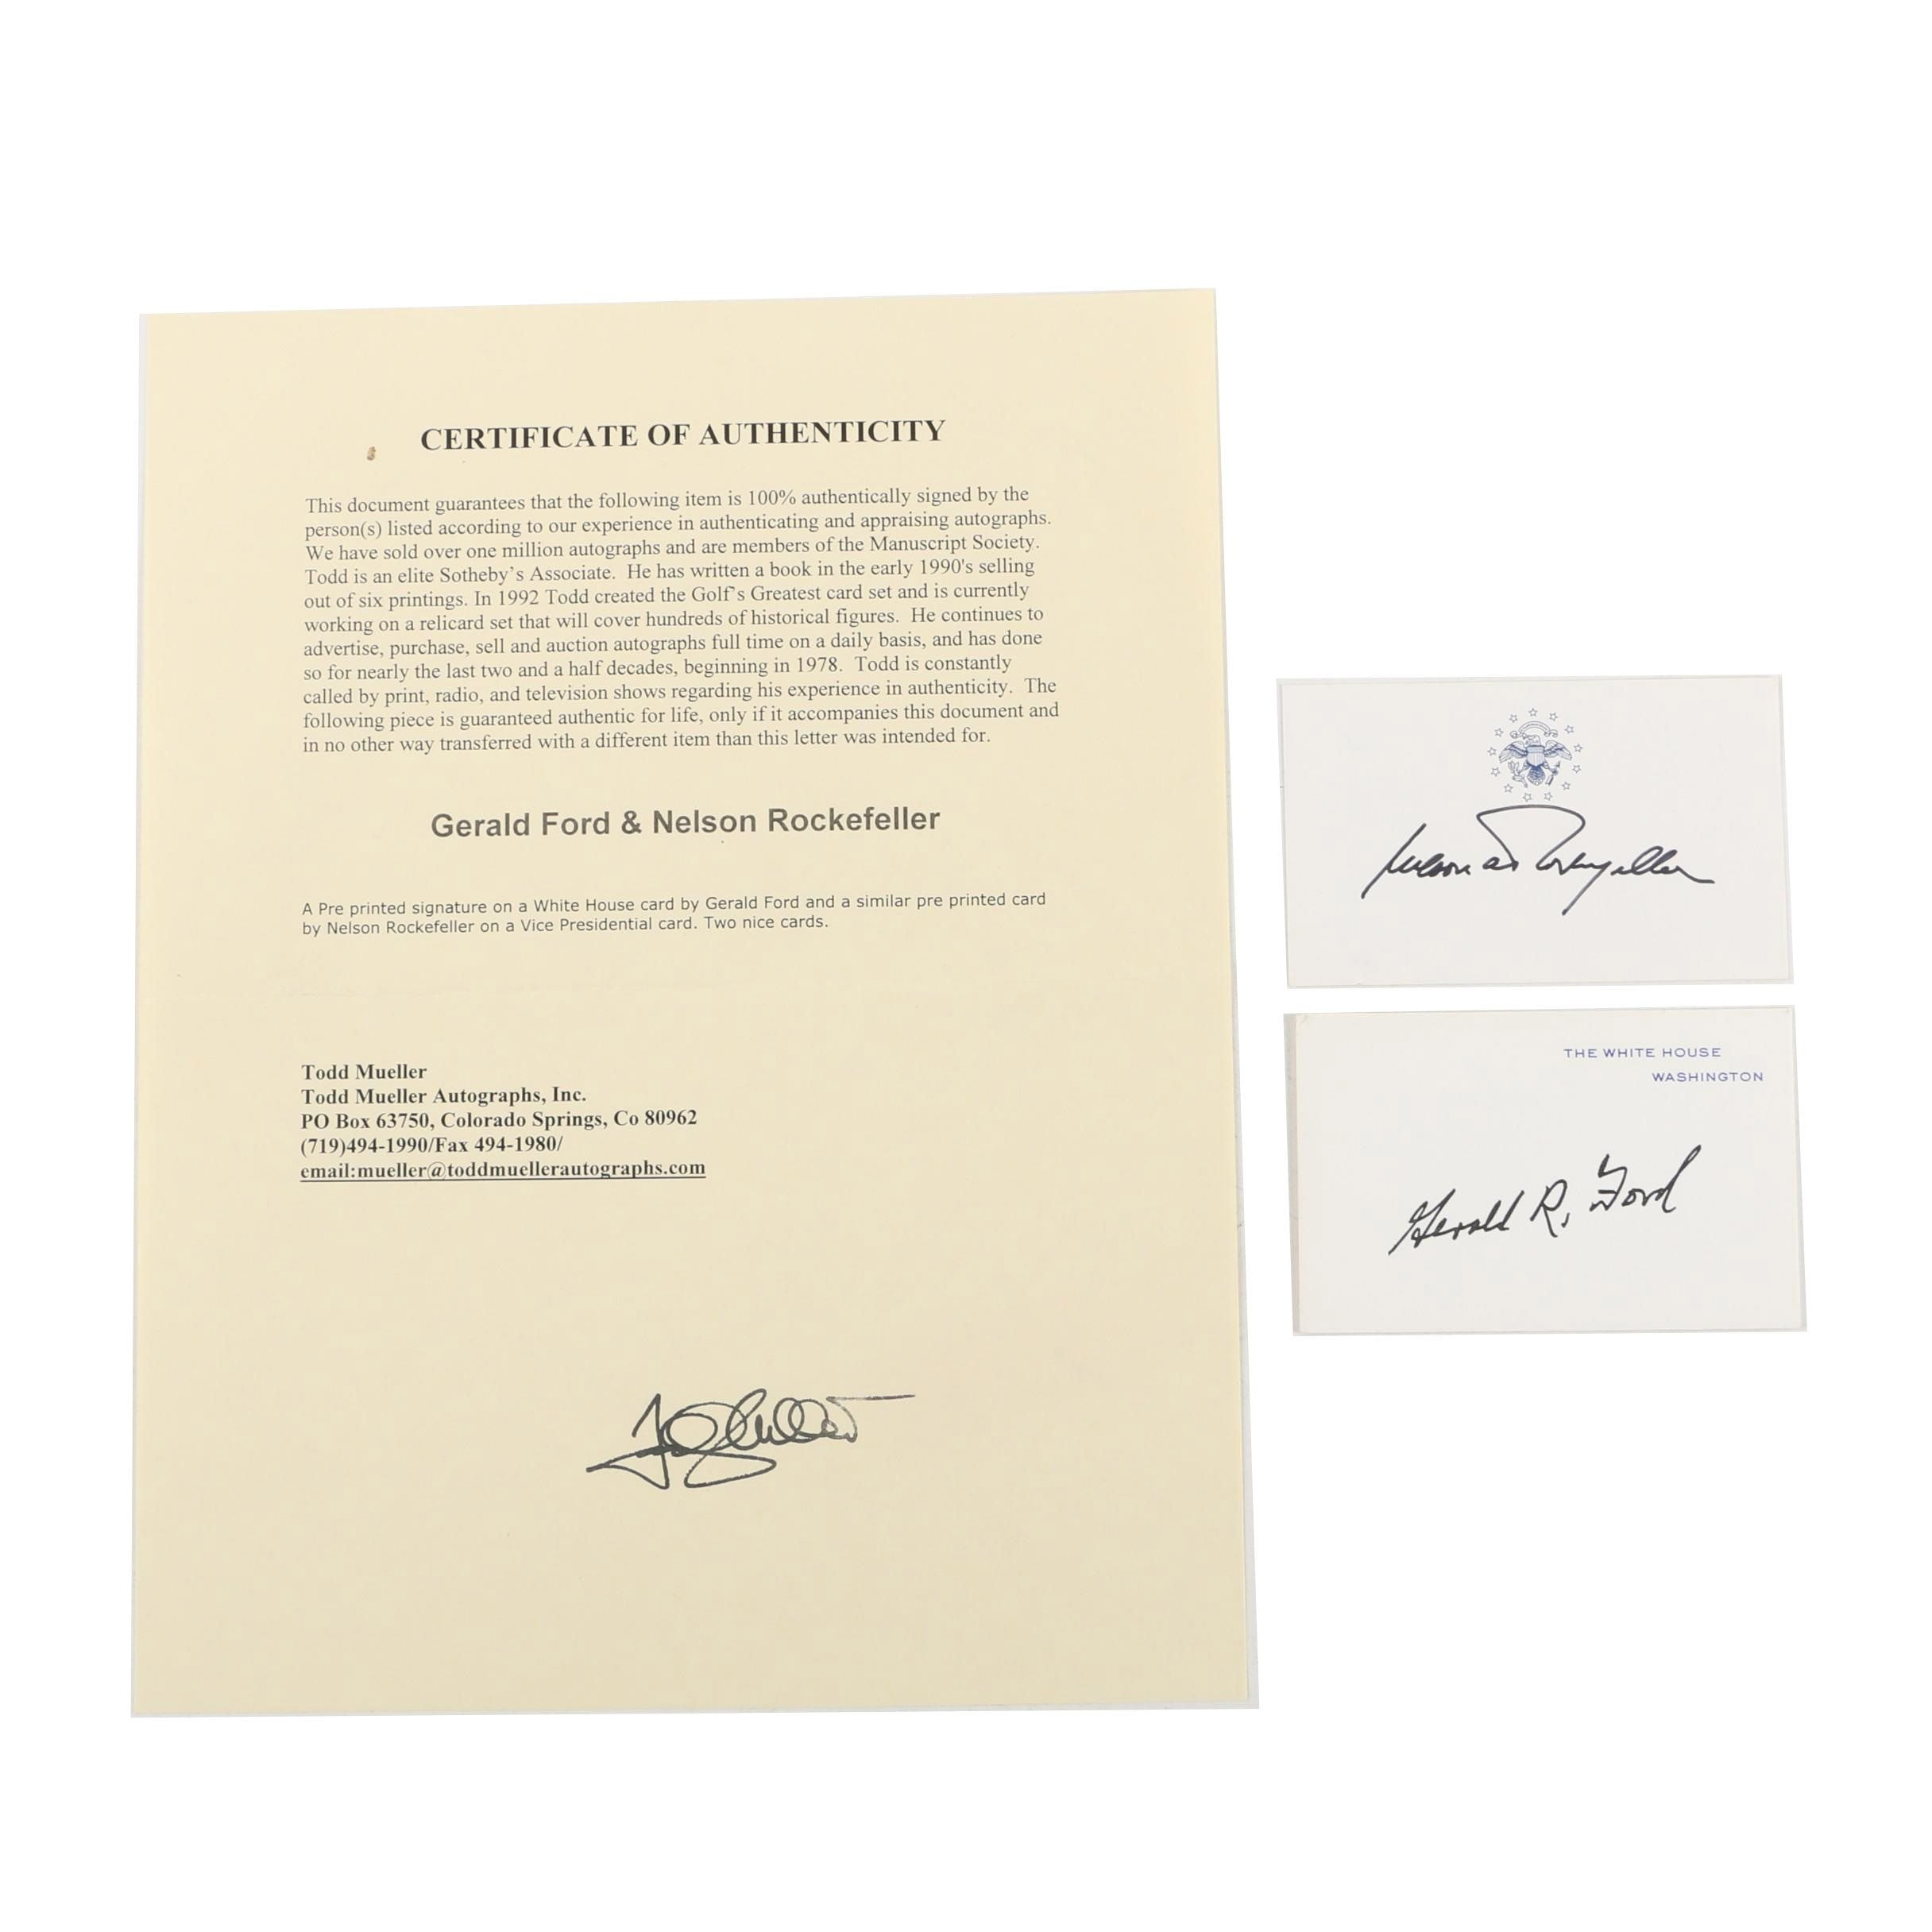 Gerald Ford and Nelson Rockefeller Autographed Cards